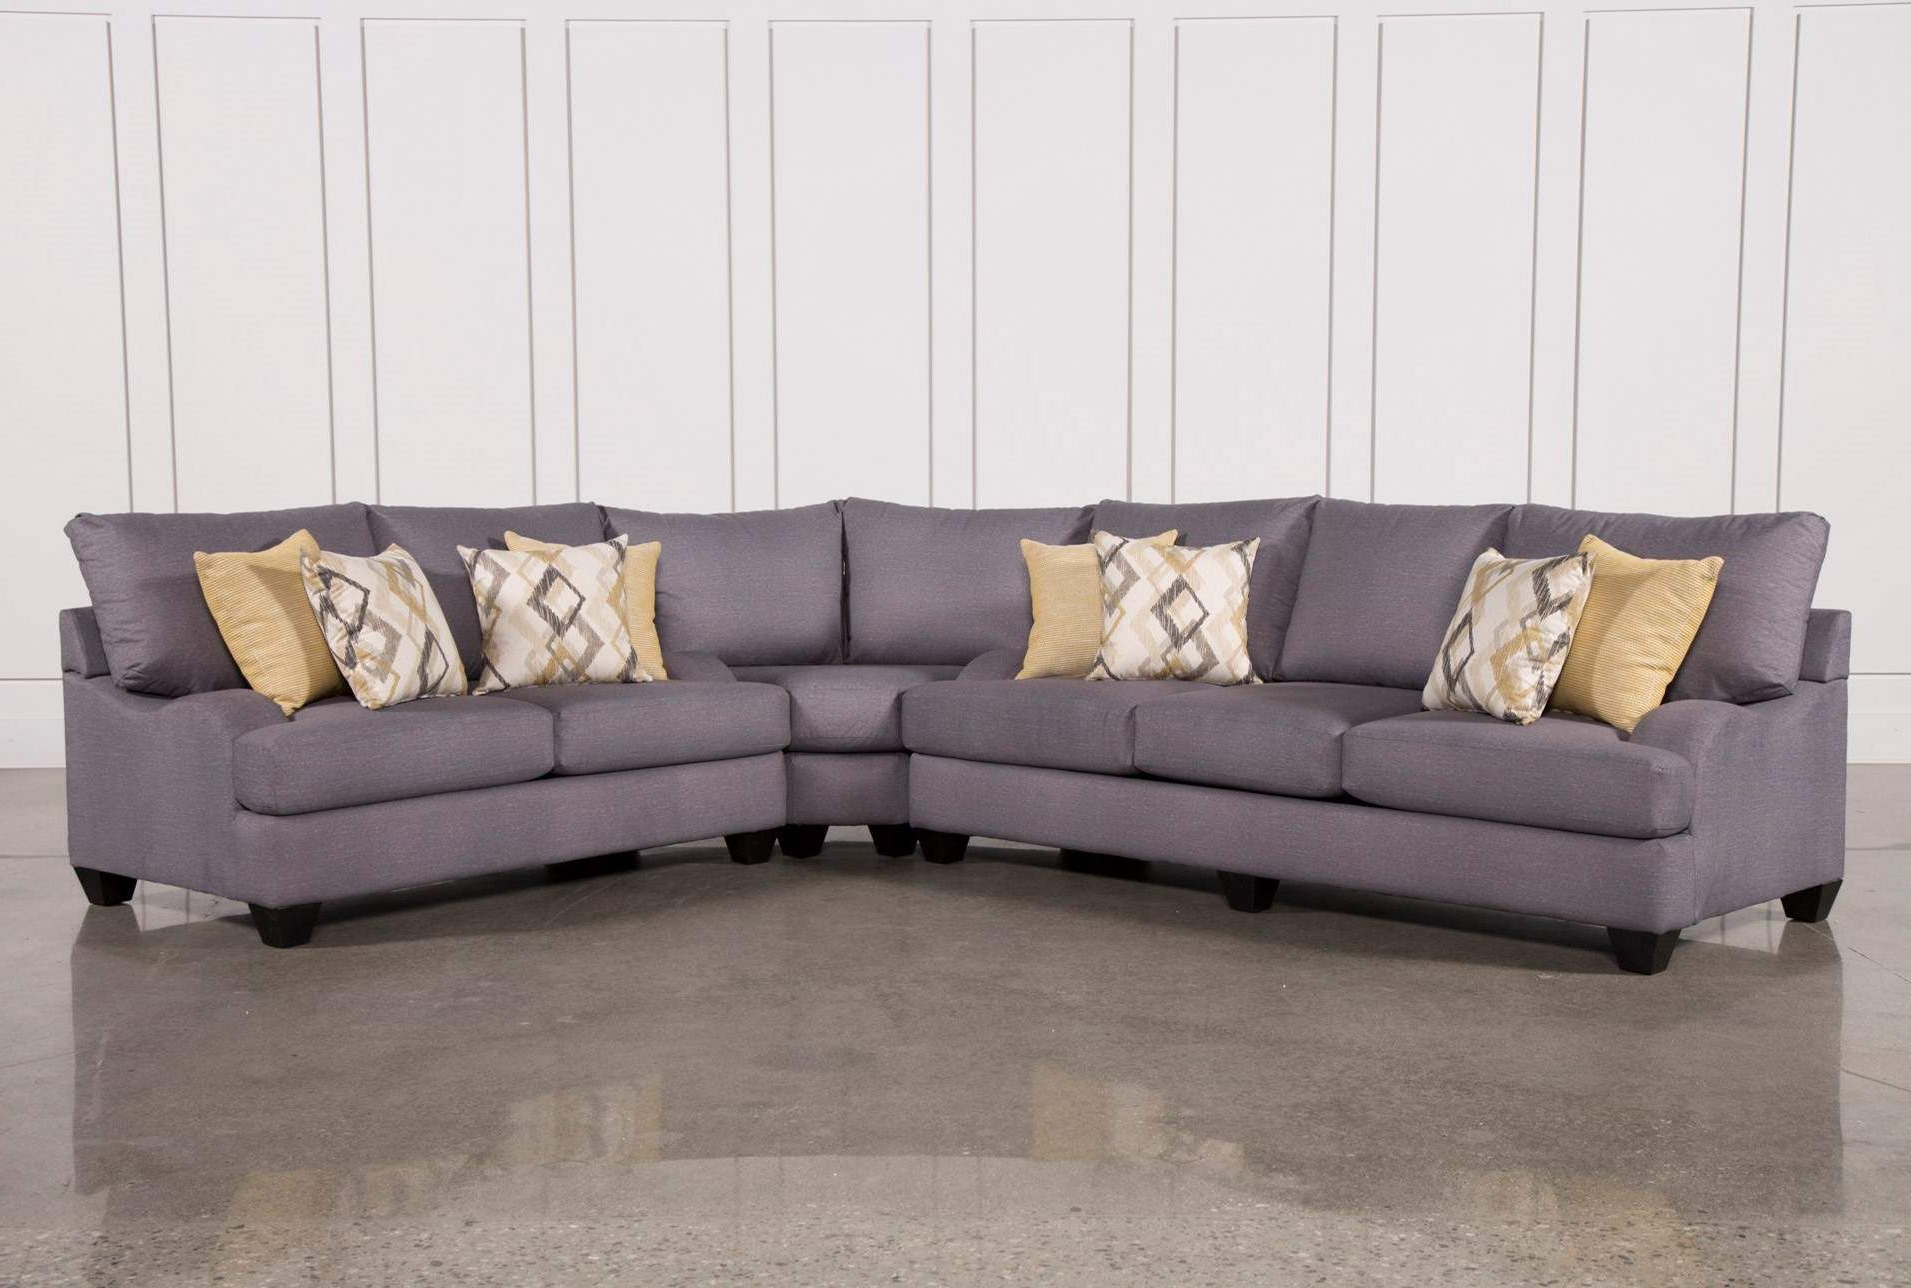 Recent Sierra Foam 3 Piece Sectional Regarding Mesa Foam 2 Piece Sectionals (View 16 of 20)